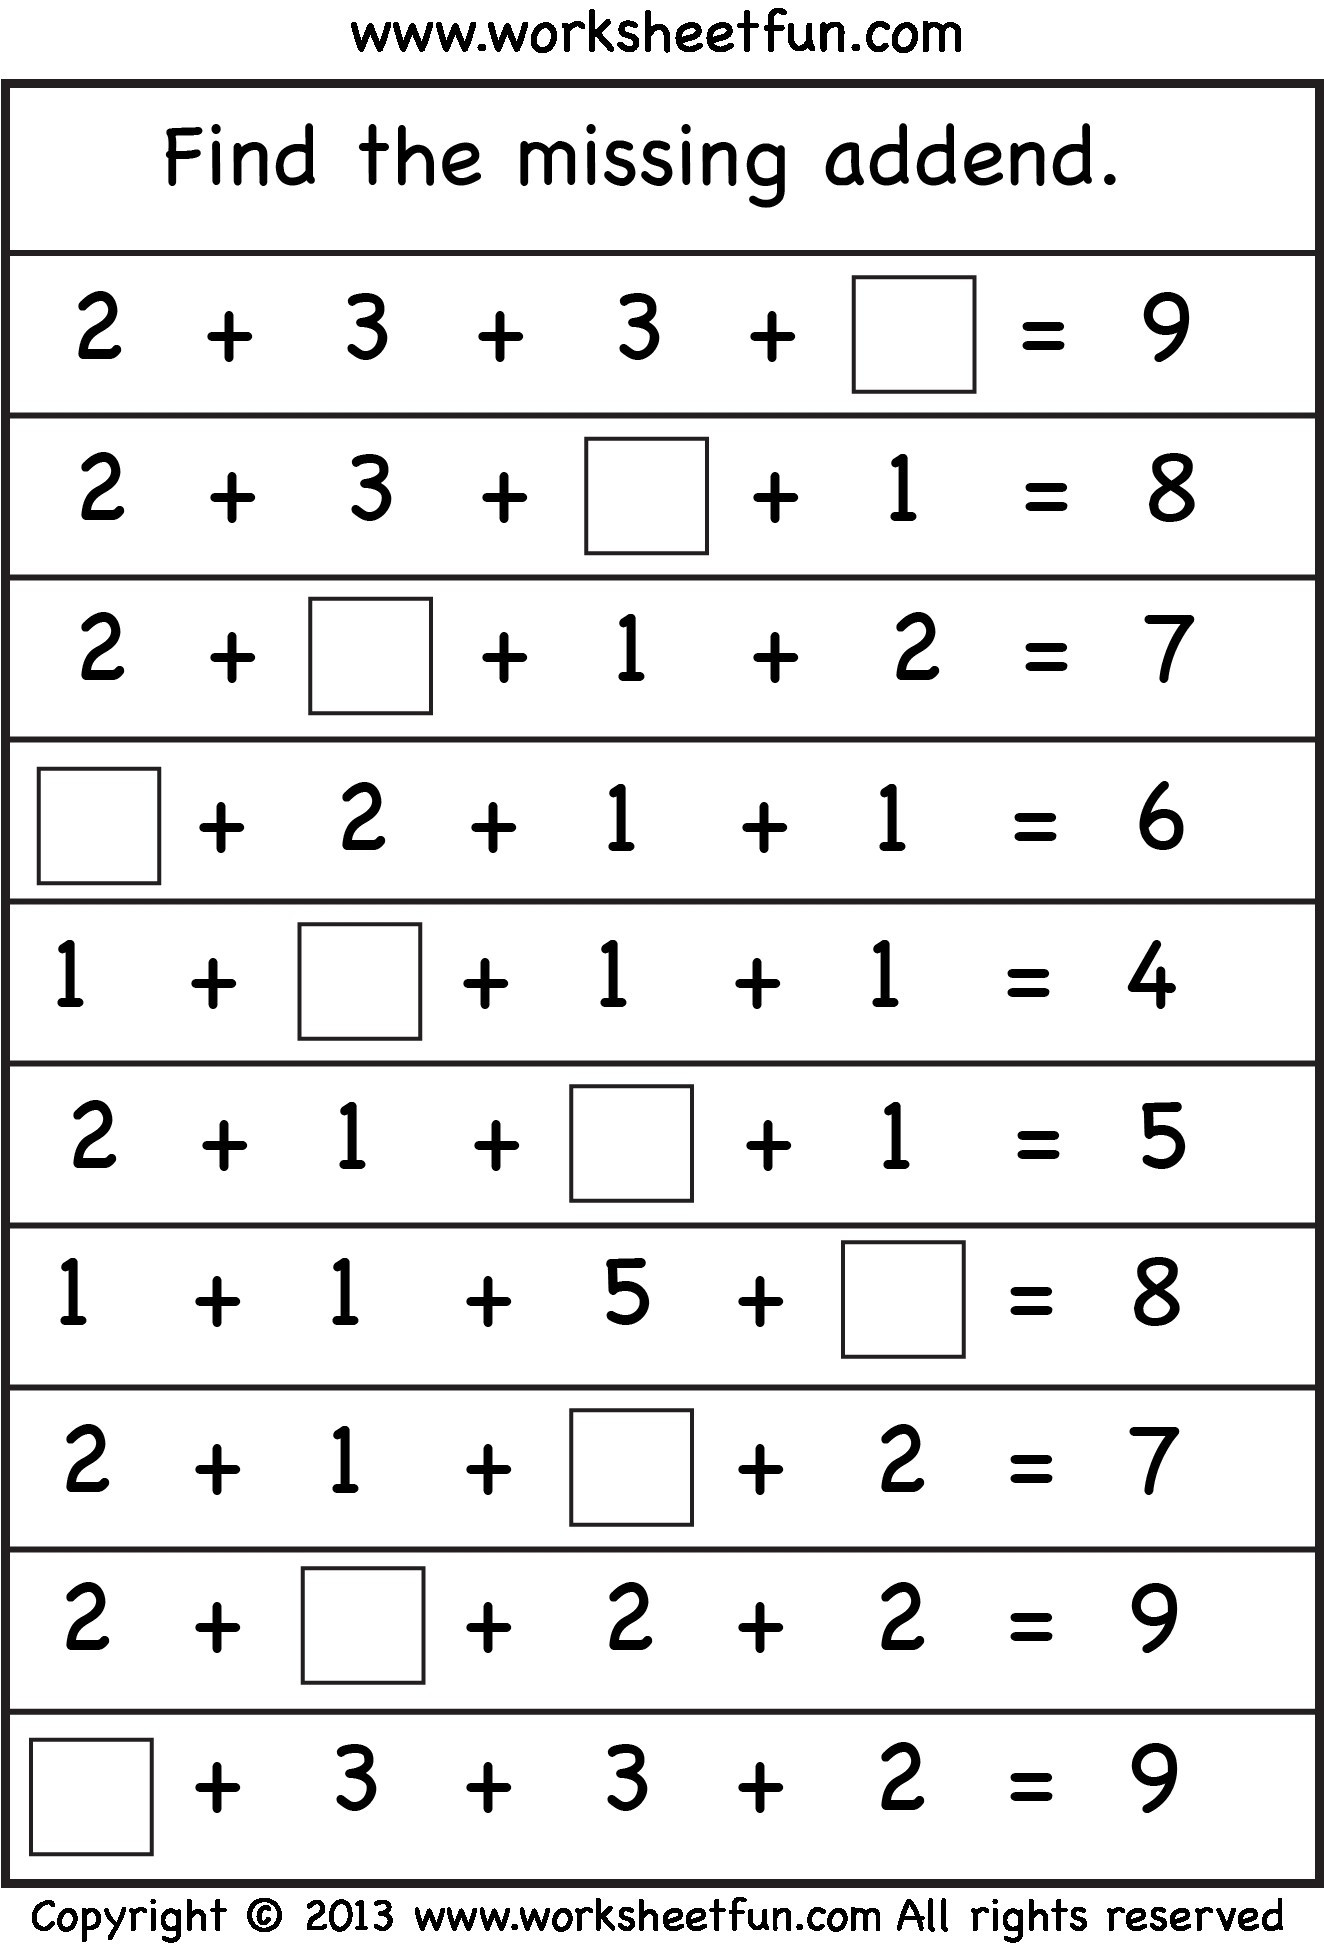 Missing Addend Worksheets First Grade Math Missing Addend Worksheet